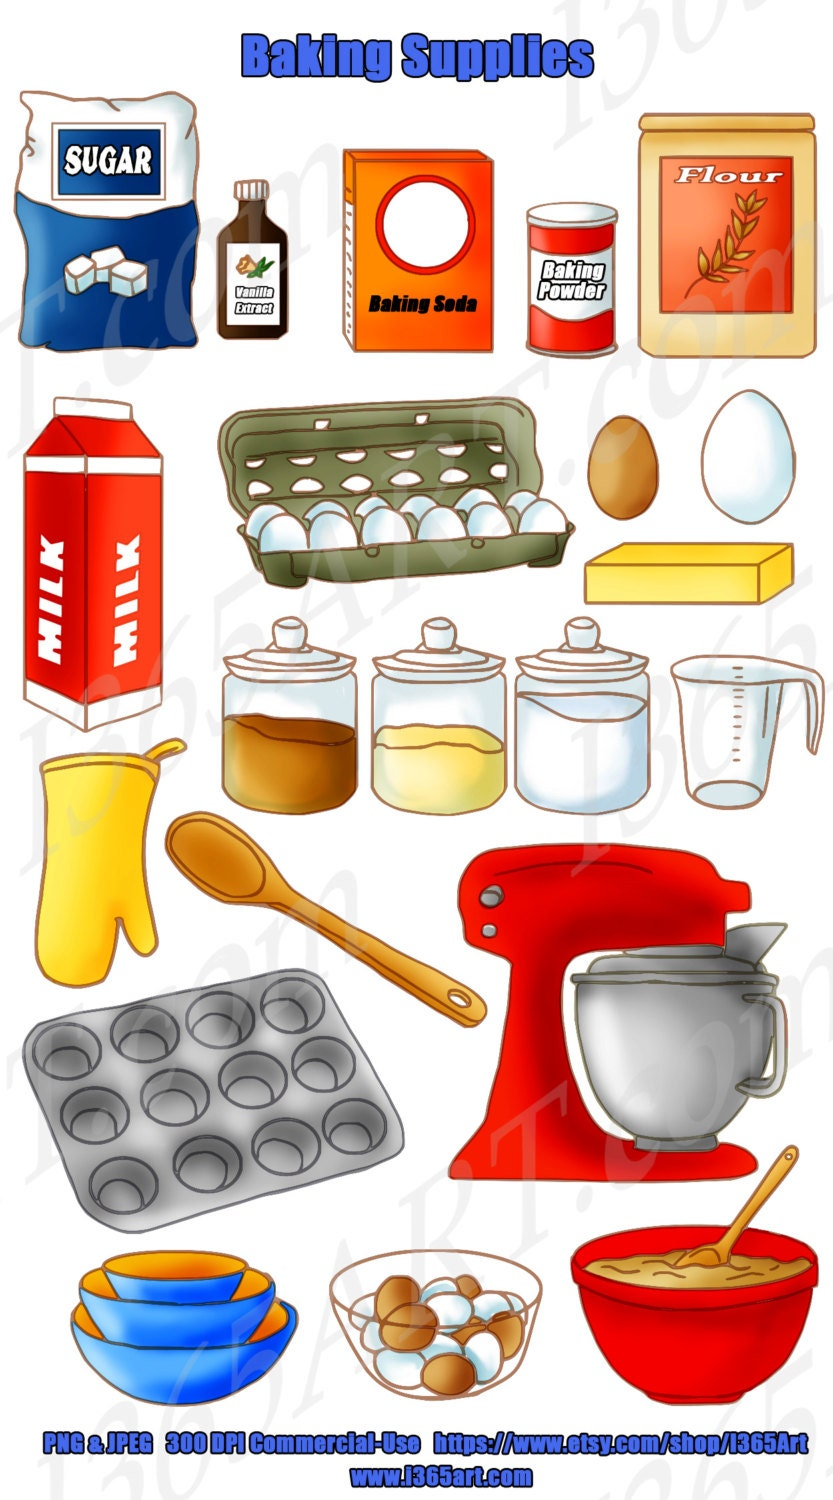 Item details for Art and cuisine cookware review